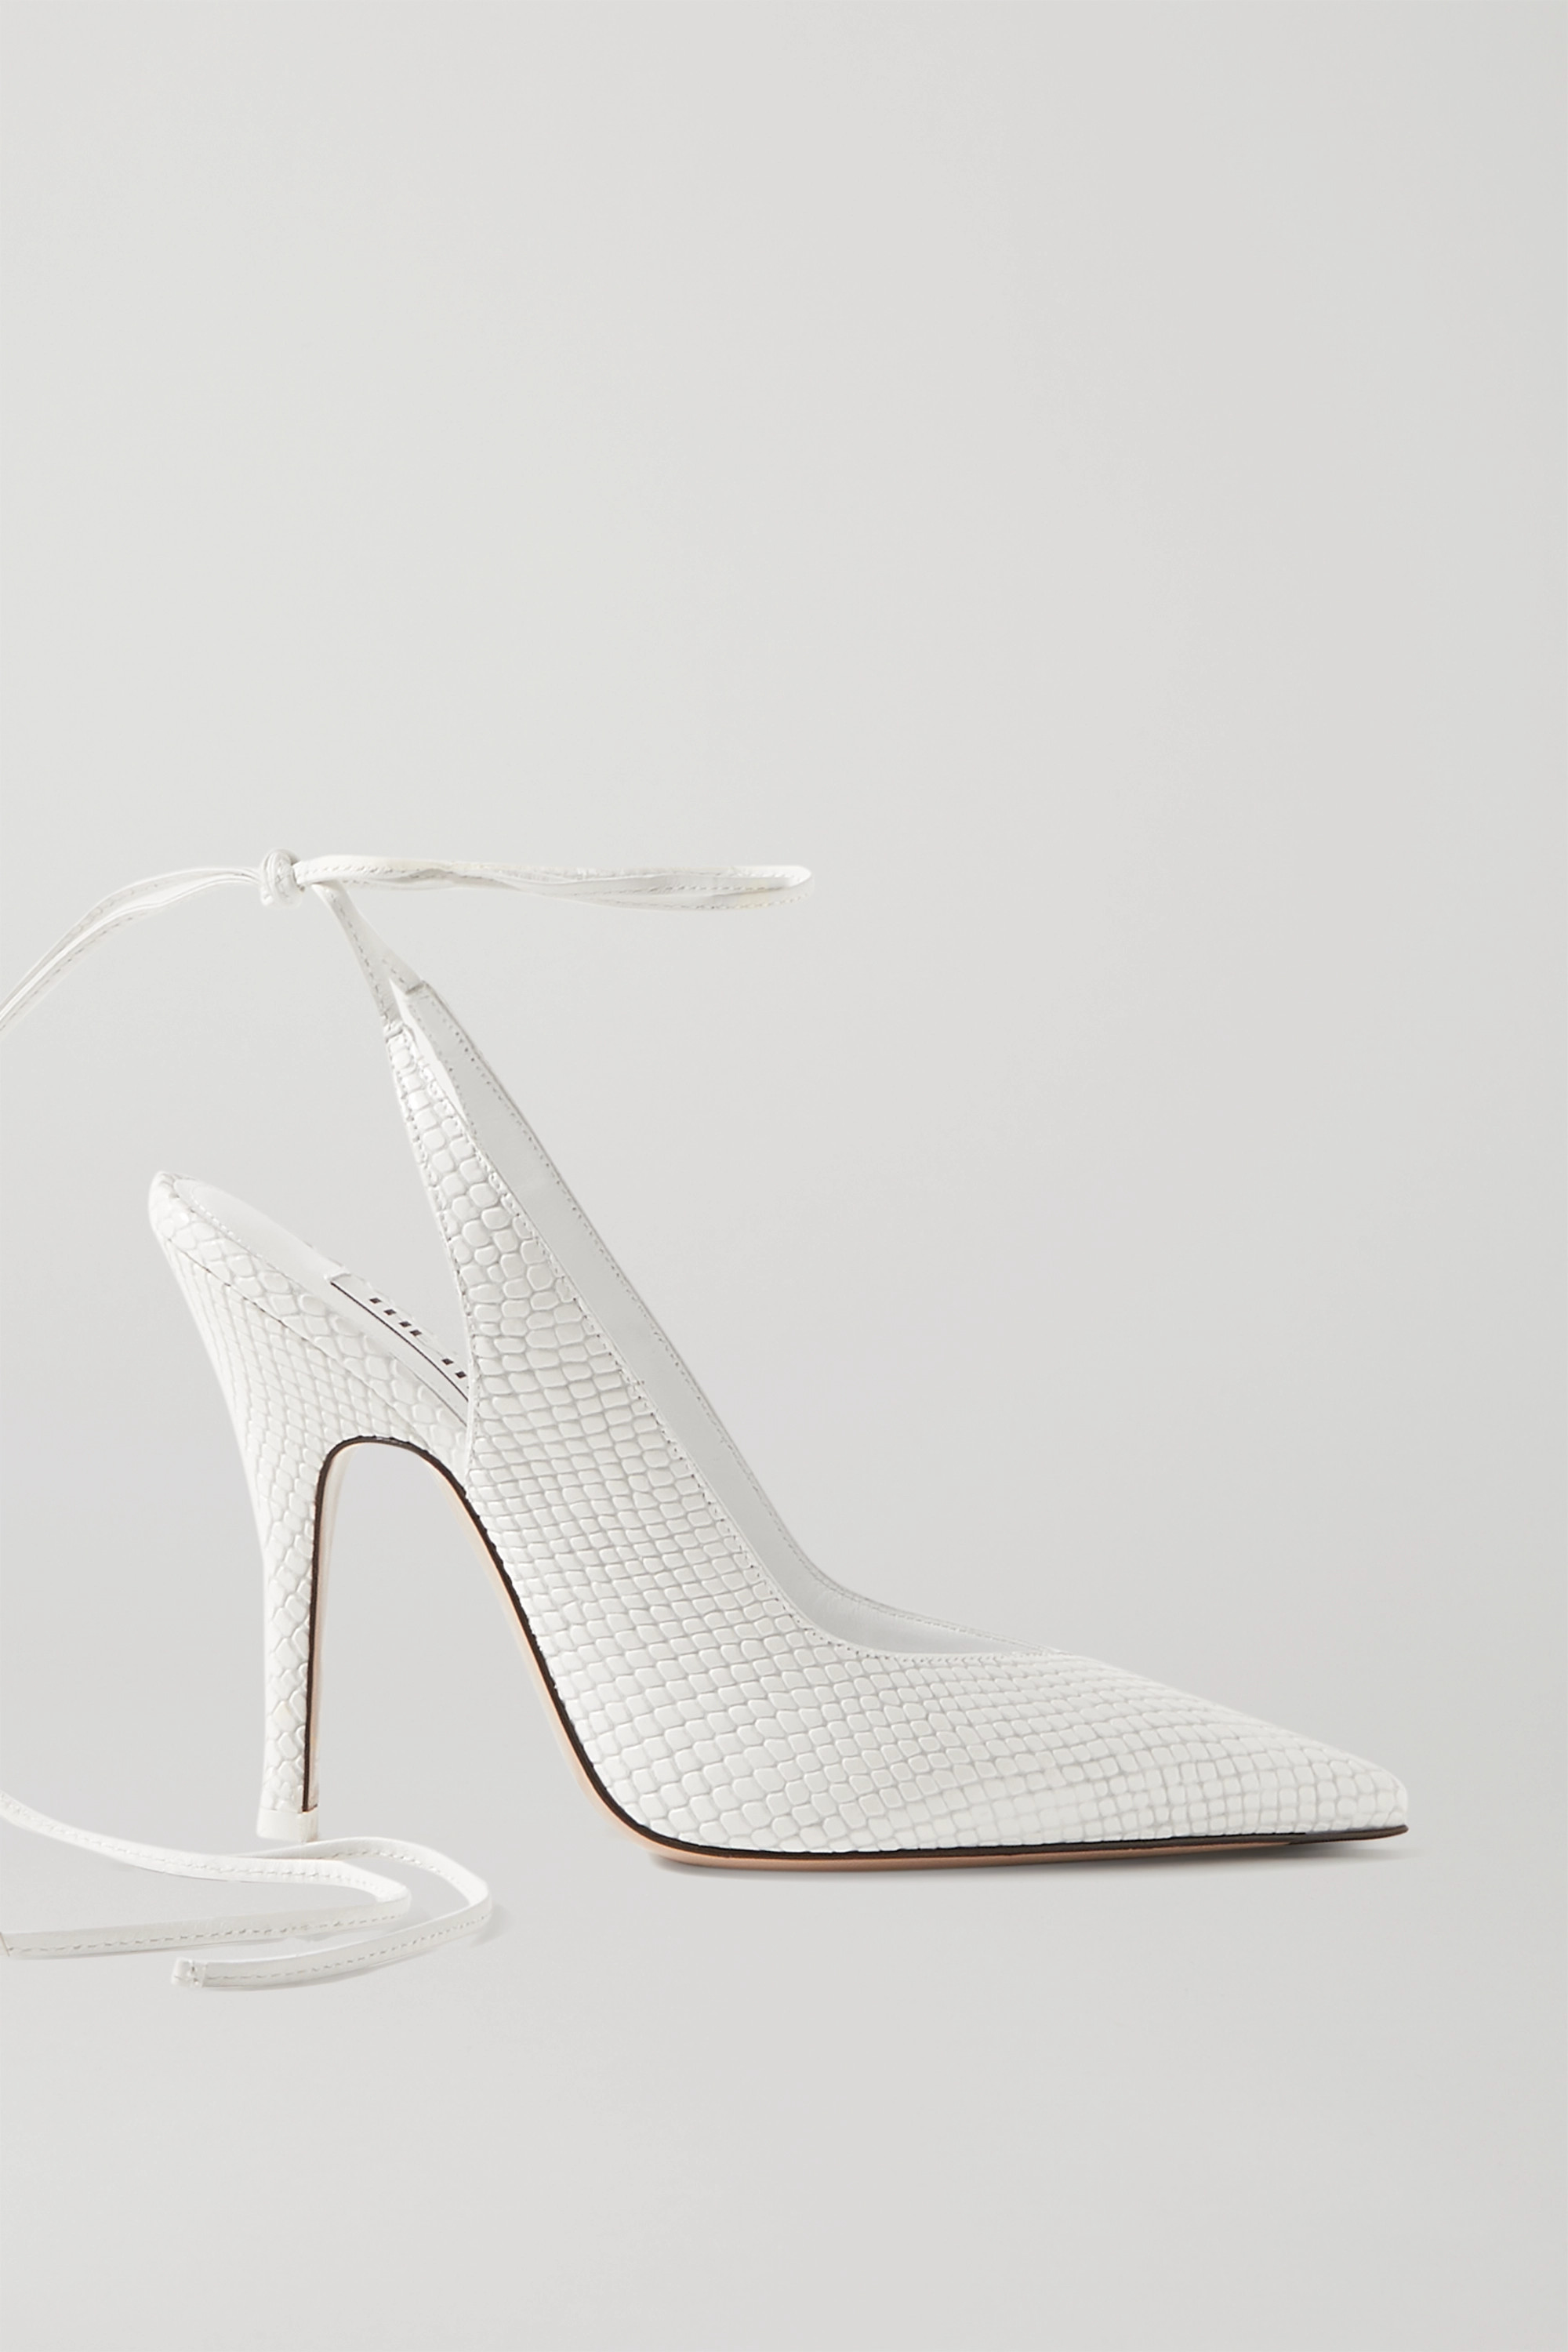 The Attico Venus snake-effect leather pumps